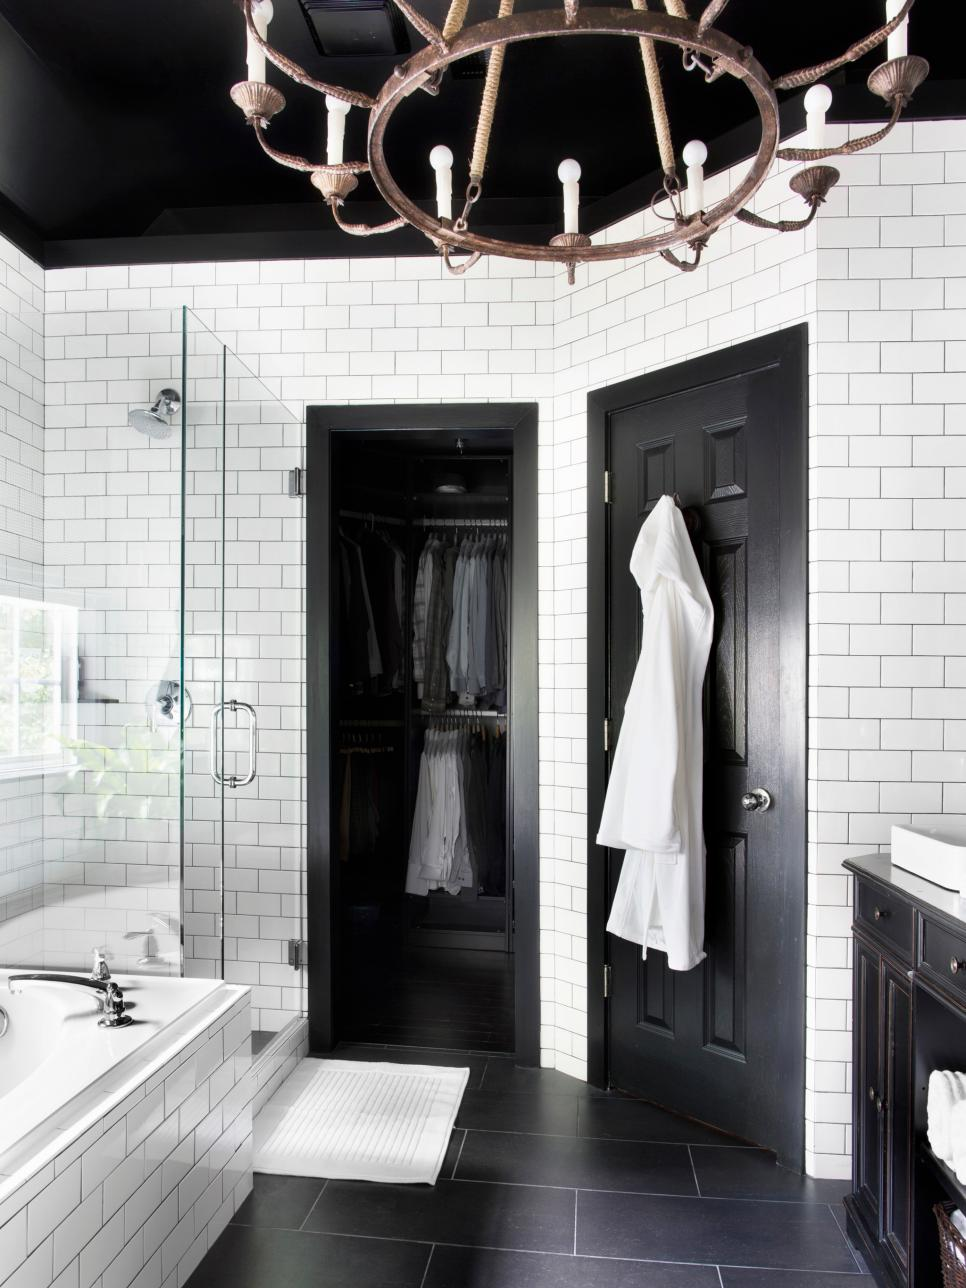 original_bpf-black-white-bathroom-beauty3_v-jpg-rend-hgtvcom-966-1288